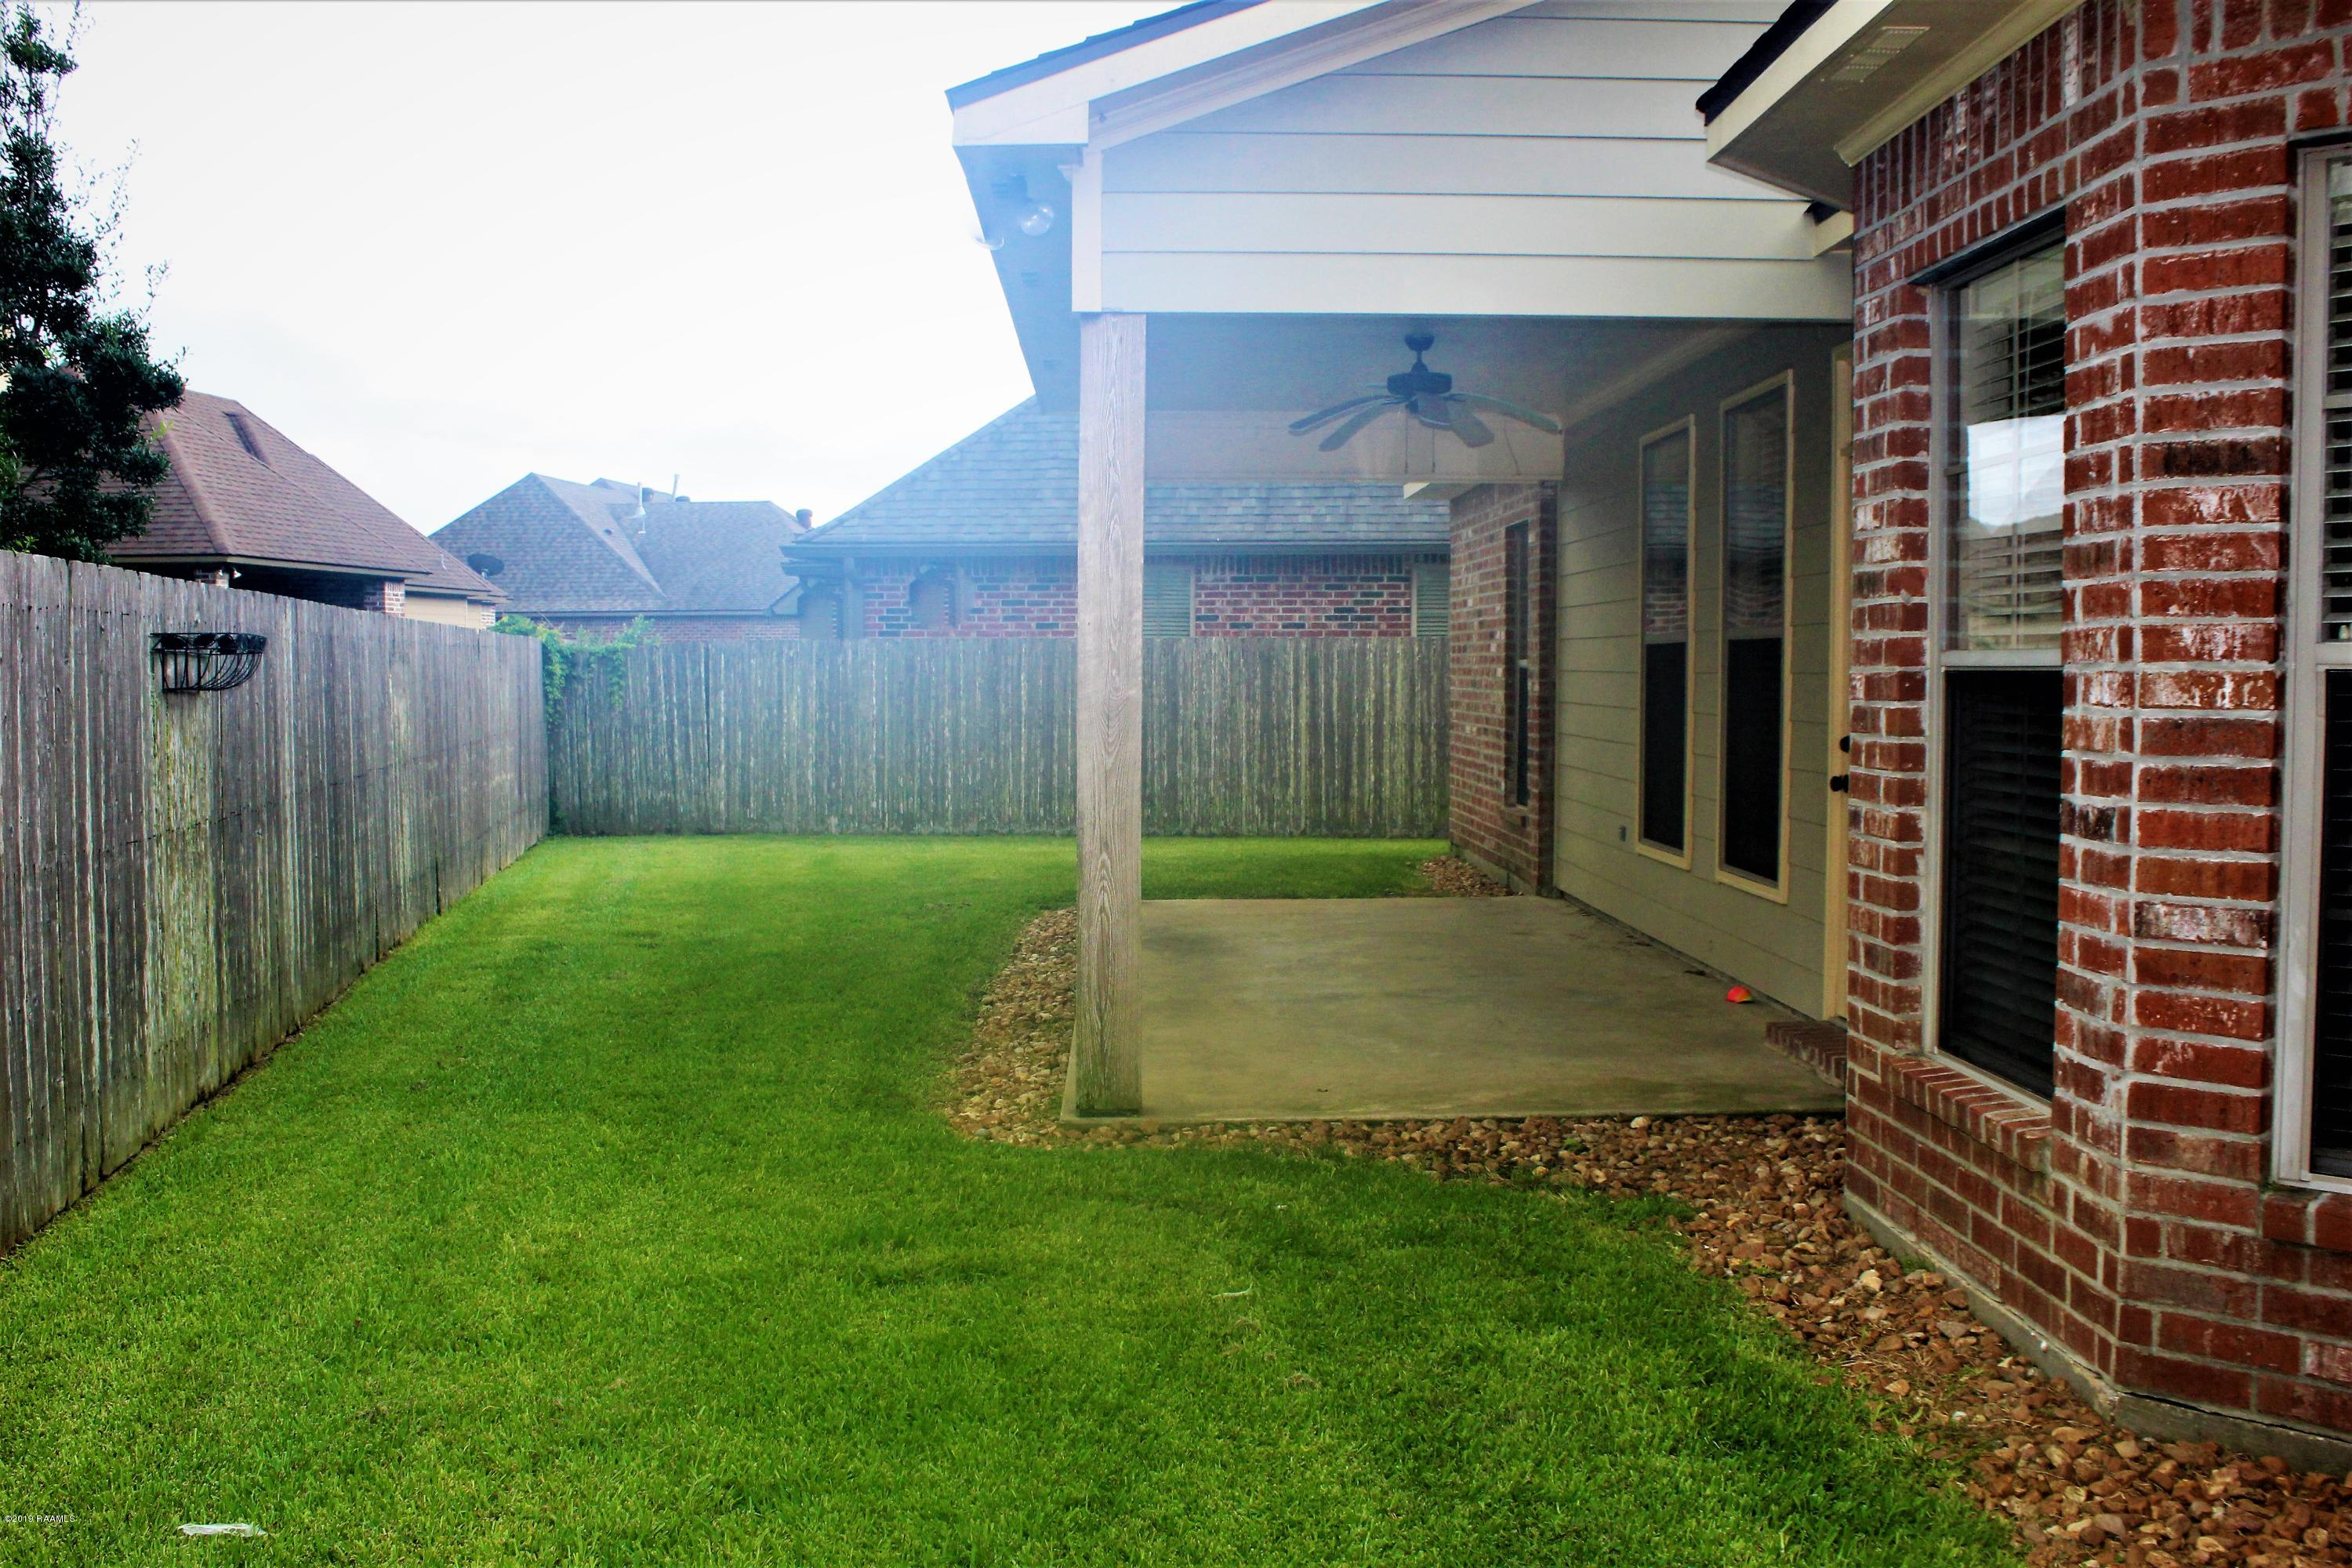 110 Dogleg Drive, Broussard, LA 70518 Photo #19